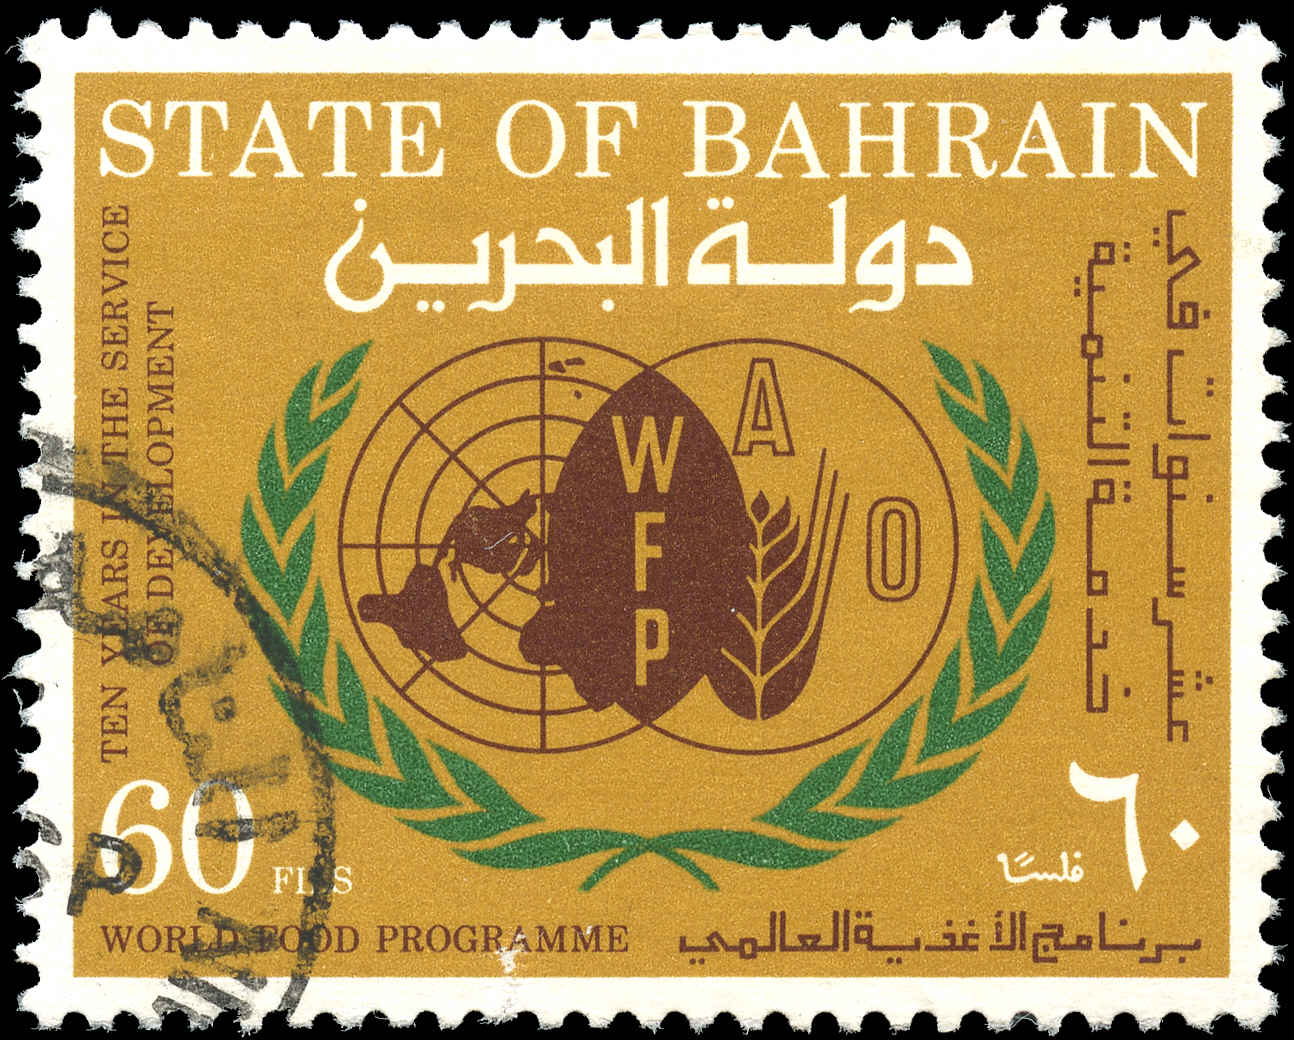 Bahrain Stamp, Scott #193, VF, Used